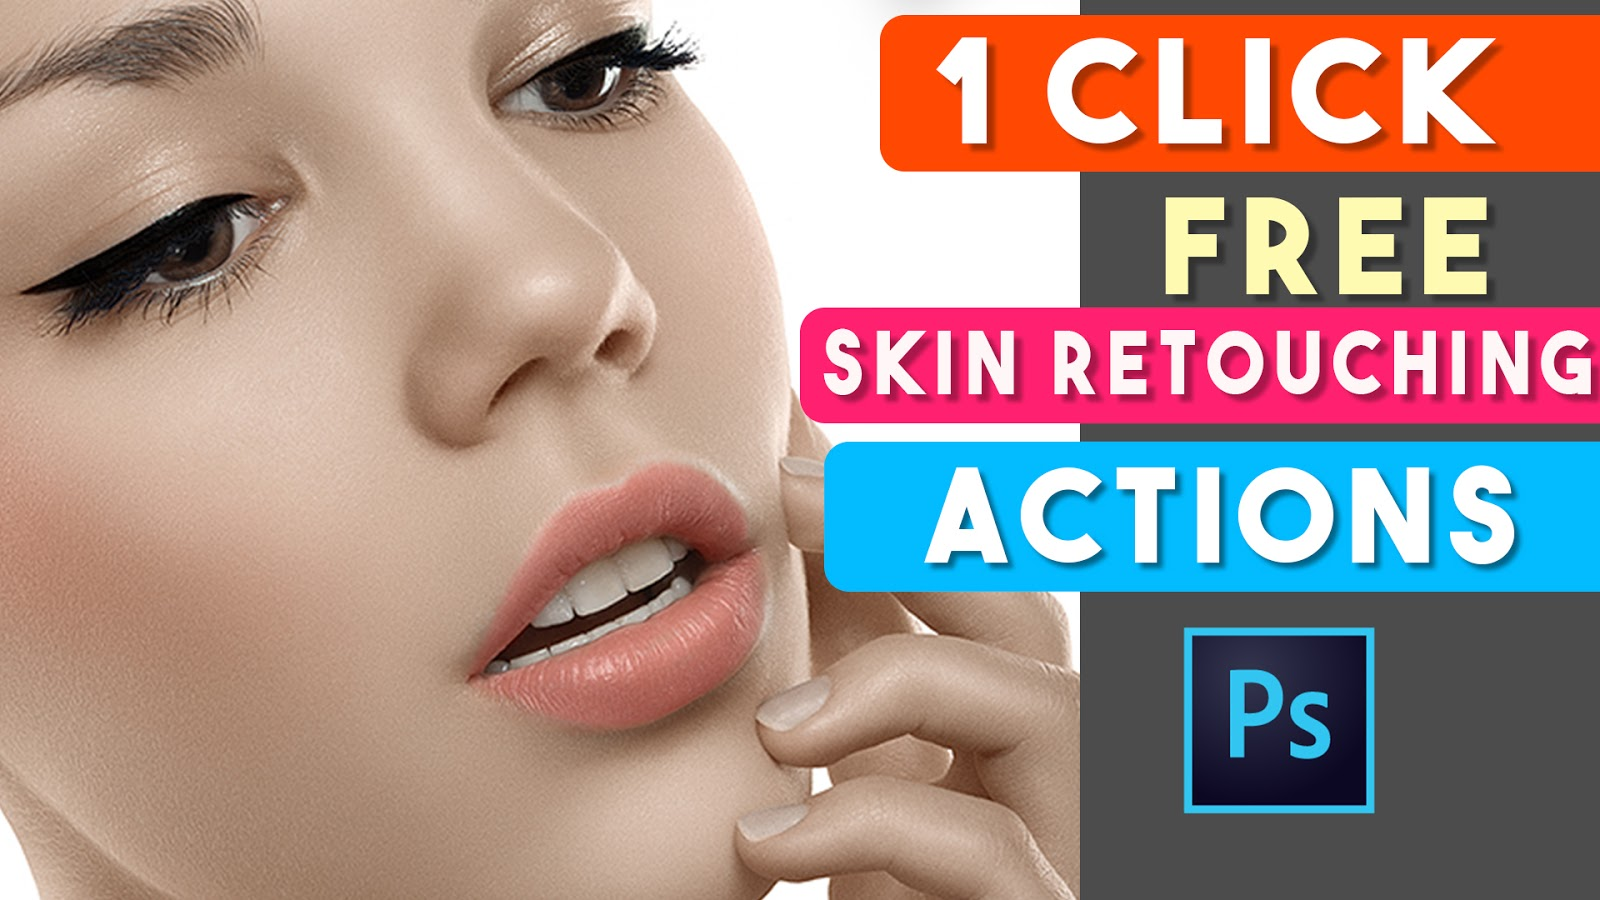 1 click skin retouching actions free download